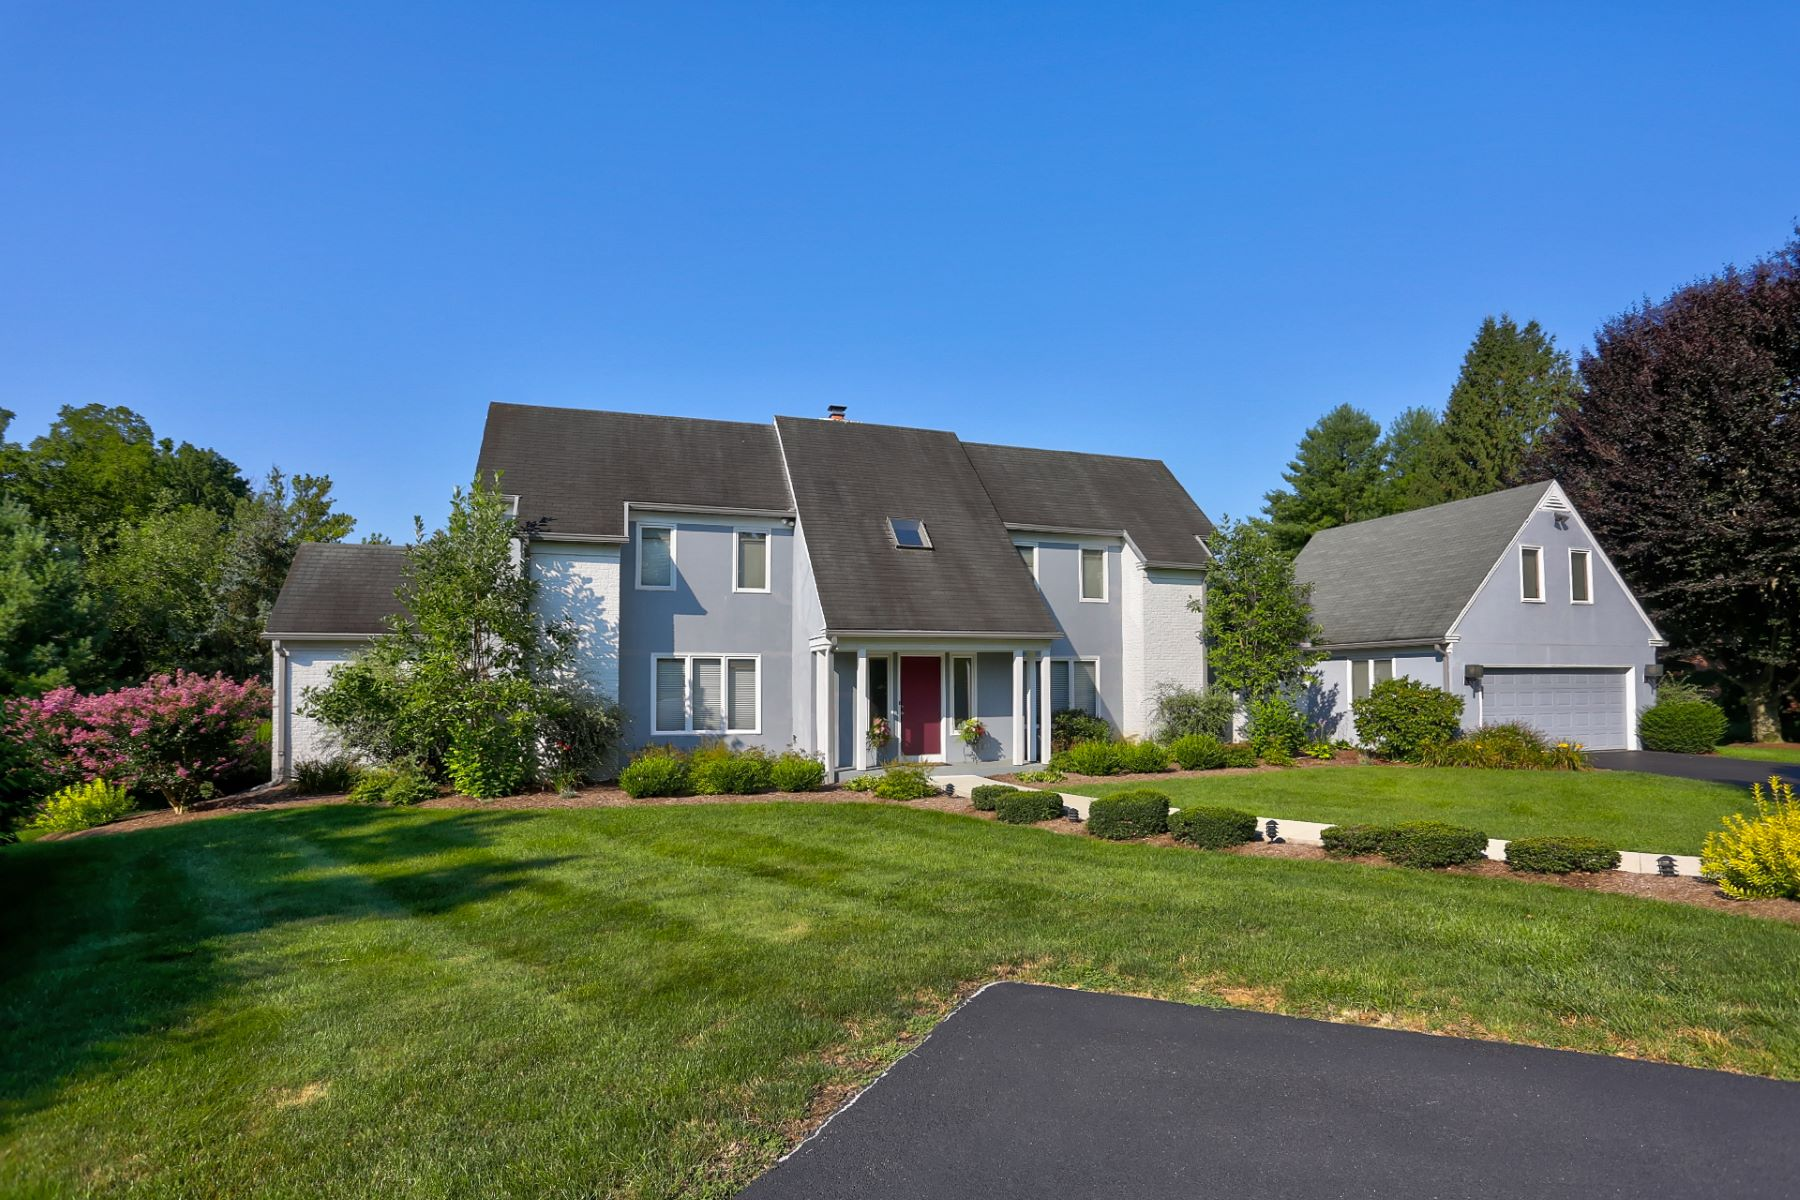 Single Family Home for Sale at 548 Northlawn Court Lancaster, Pennsylvania 17604 United States